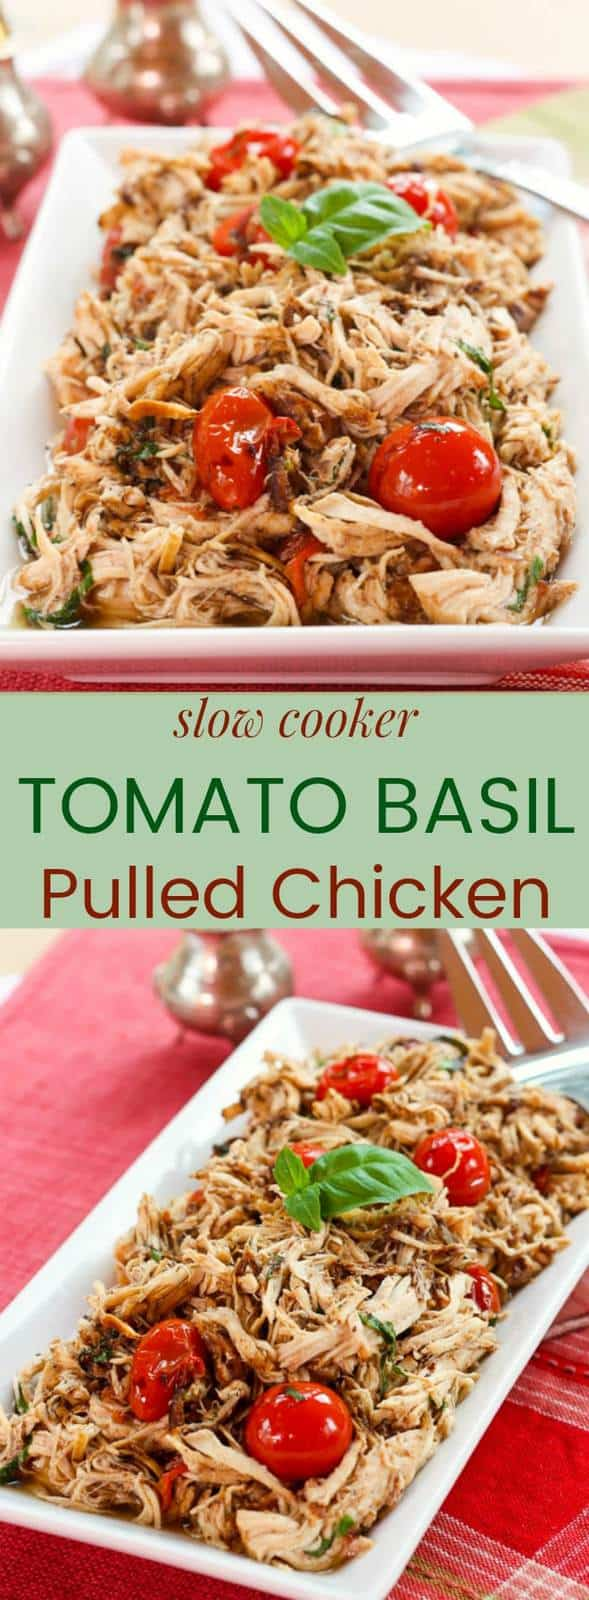 Slow Cooker Tomato Basil Pulled Chicken - a healthy and easy chicken dinner recipe from your crockpot. Serve over pasta or rice, or keep it gluten free, low carb, and paleo with cauliflower rice or zoodles. #slowcooker #chickenrecipe #glutenfree #paleo #whole30 #lowcarb #ketogenicdiet #chicken